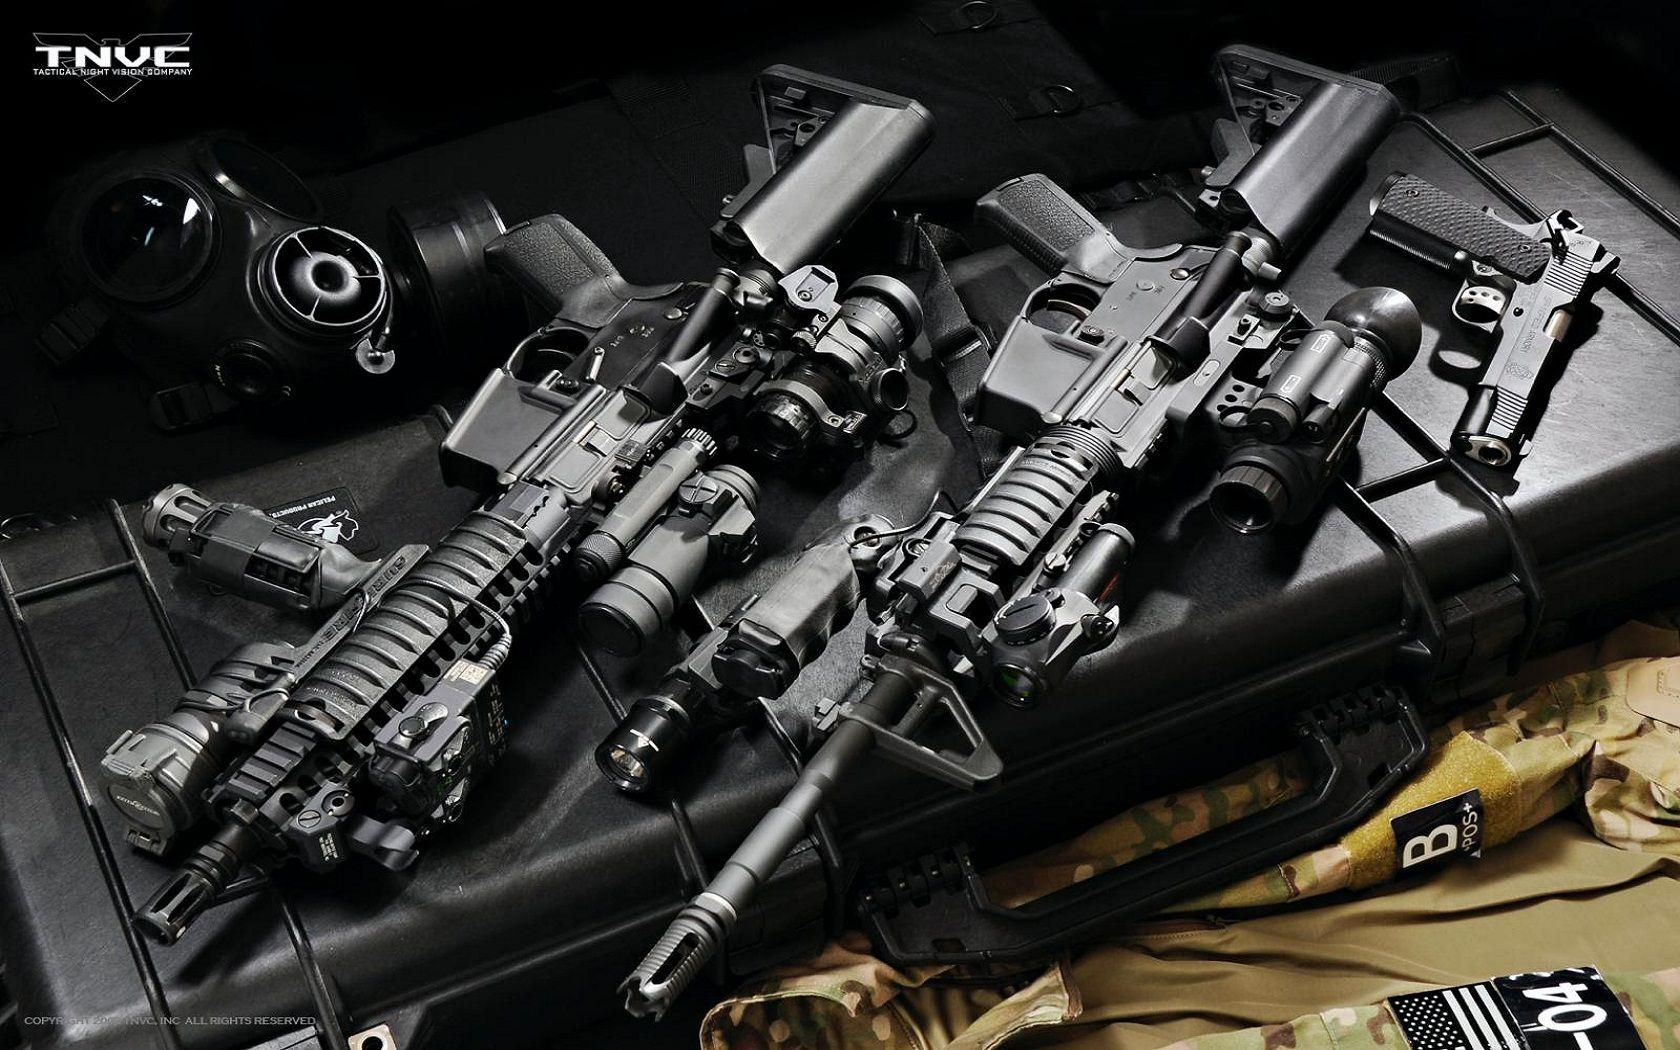 Guns Wallpapers Wallpaper Cave - 47 guns wallpapers and photos in 100 quality hd for download b